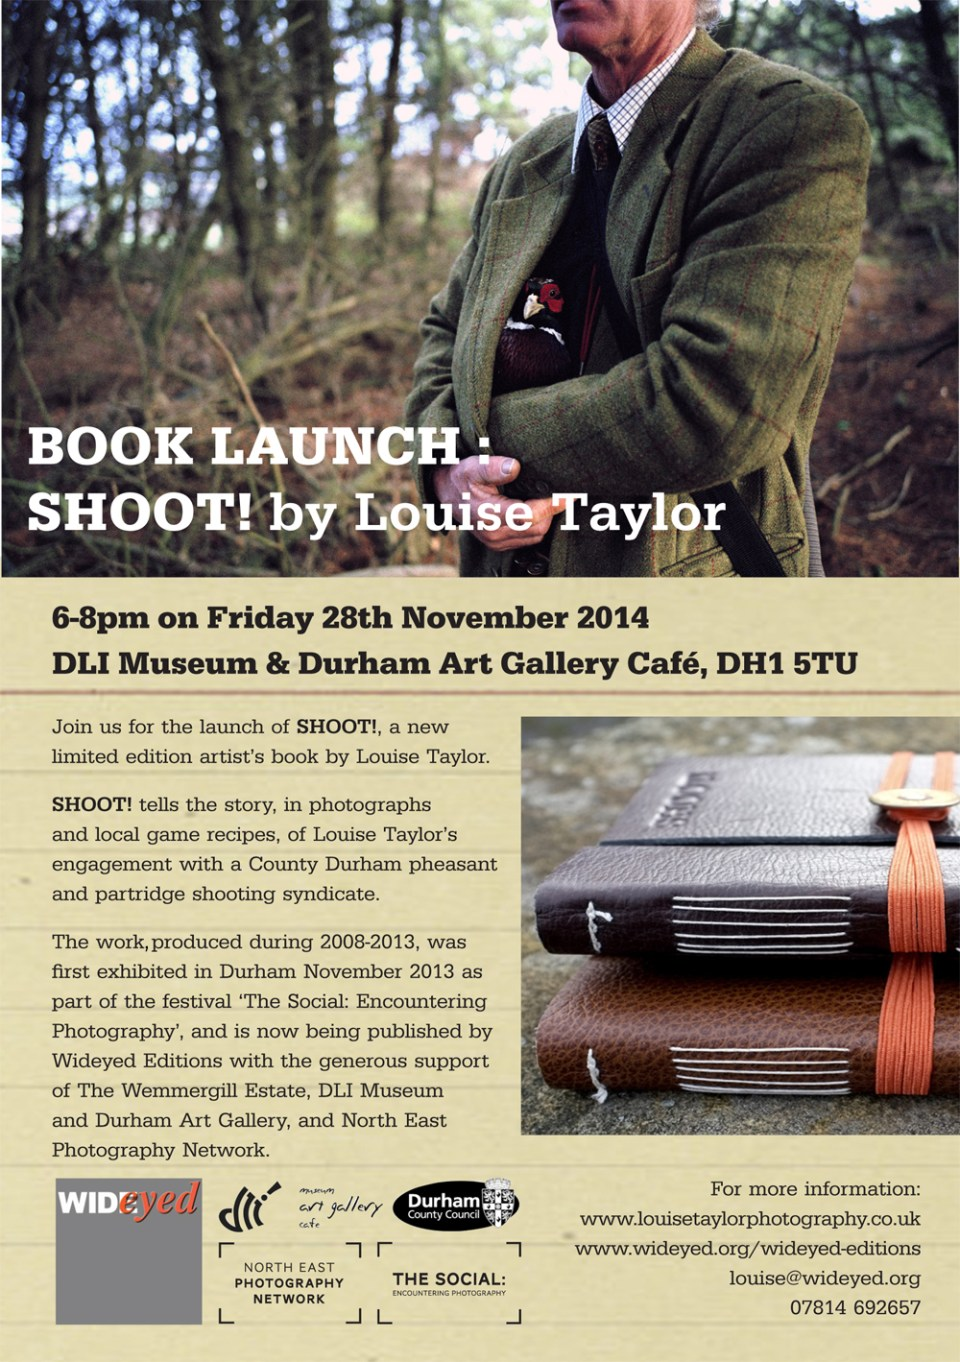 Book Launch Flyer